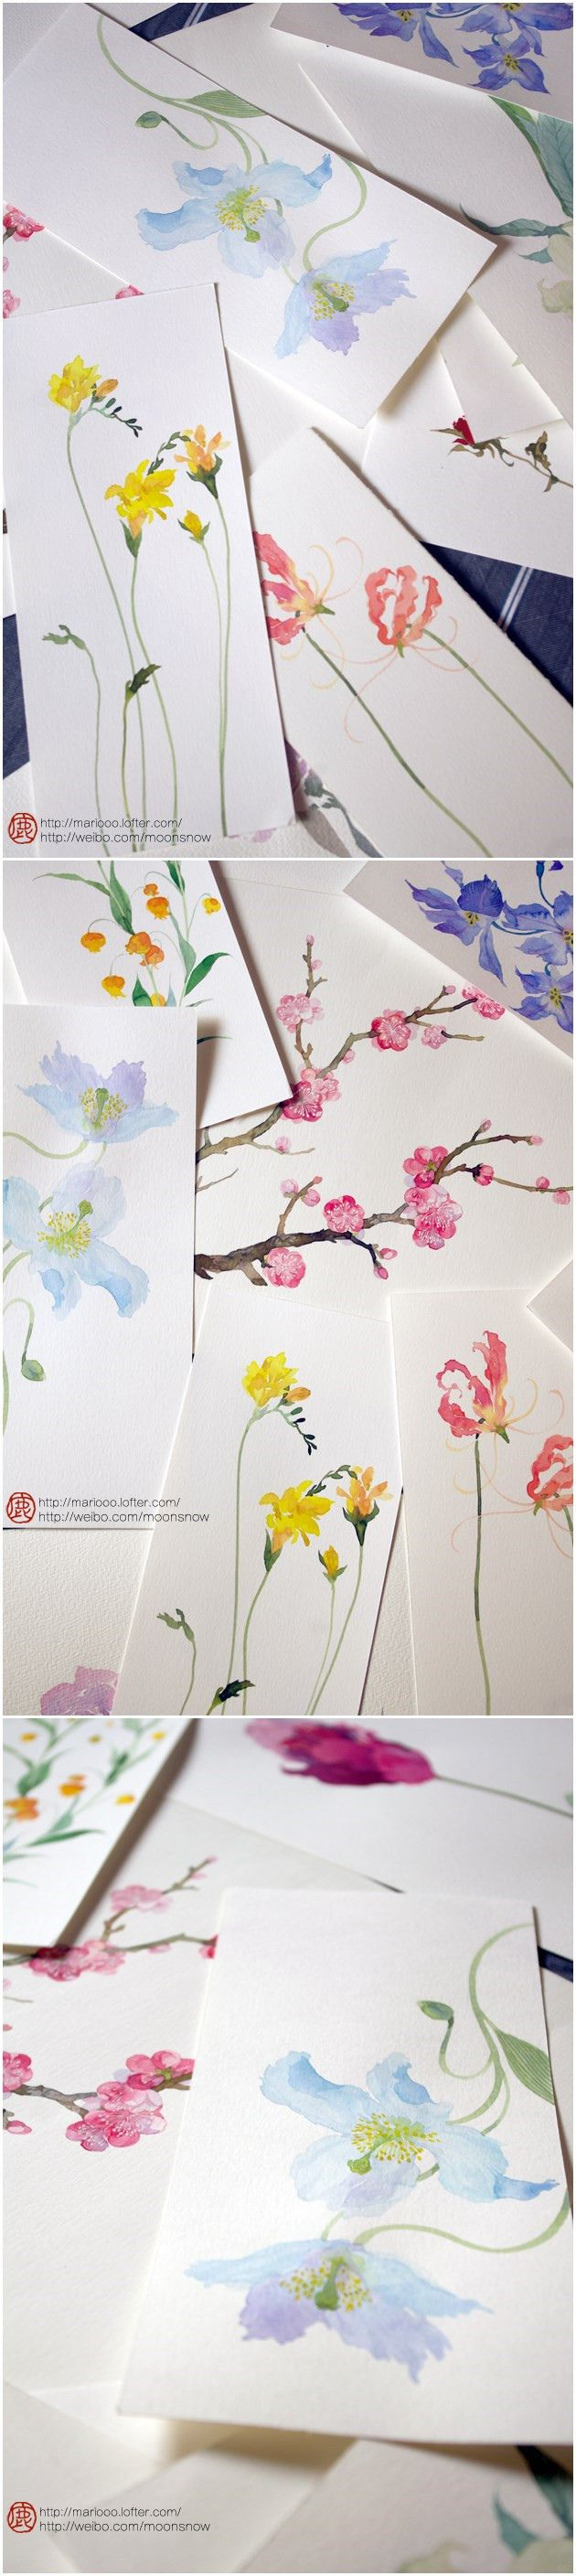 beautiful watercolor painting by 鹿菏 Could bring in some books/ magazines to use as inspiration?